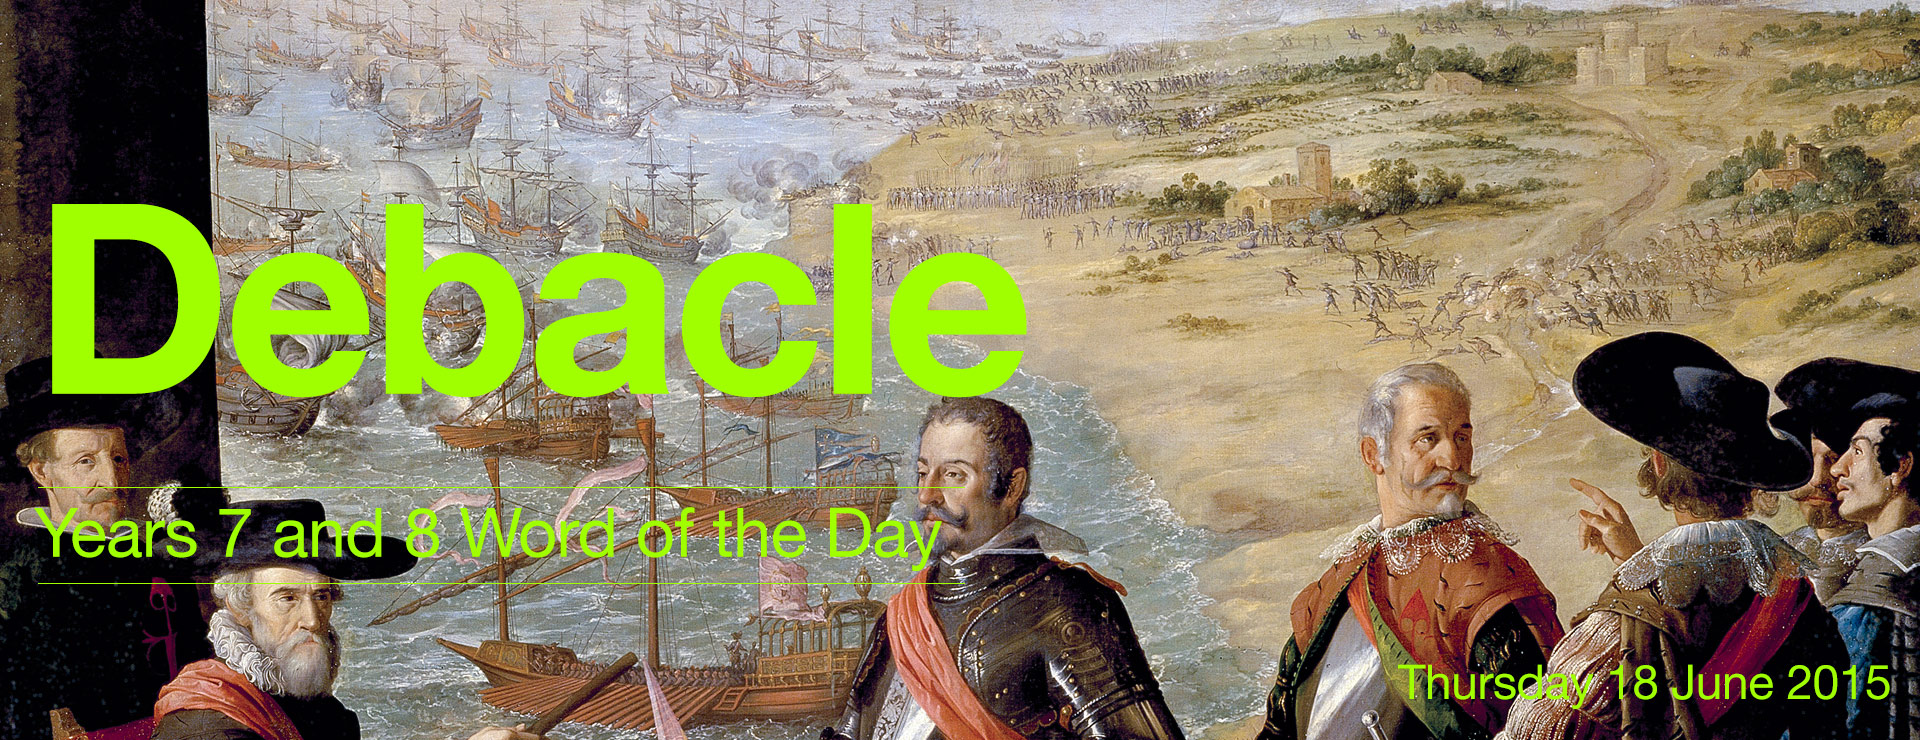 Word-of-the-Day-116.jpg